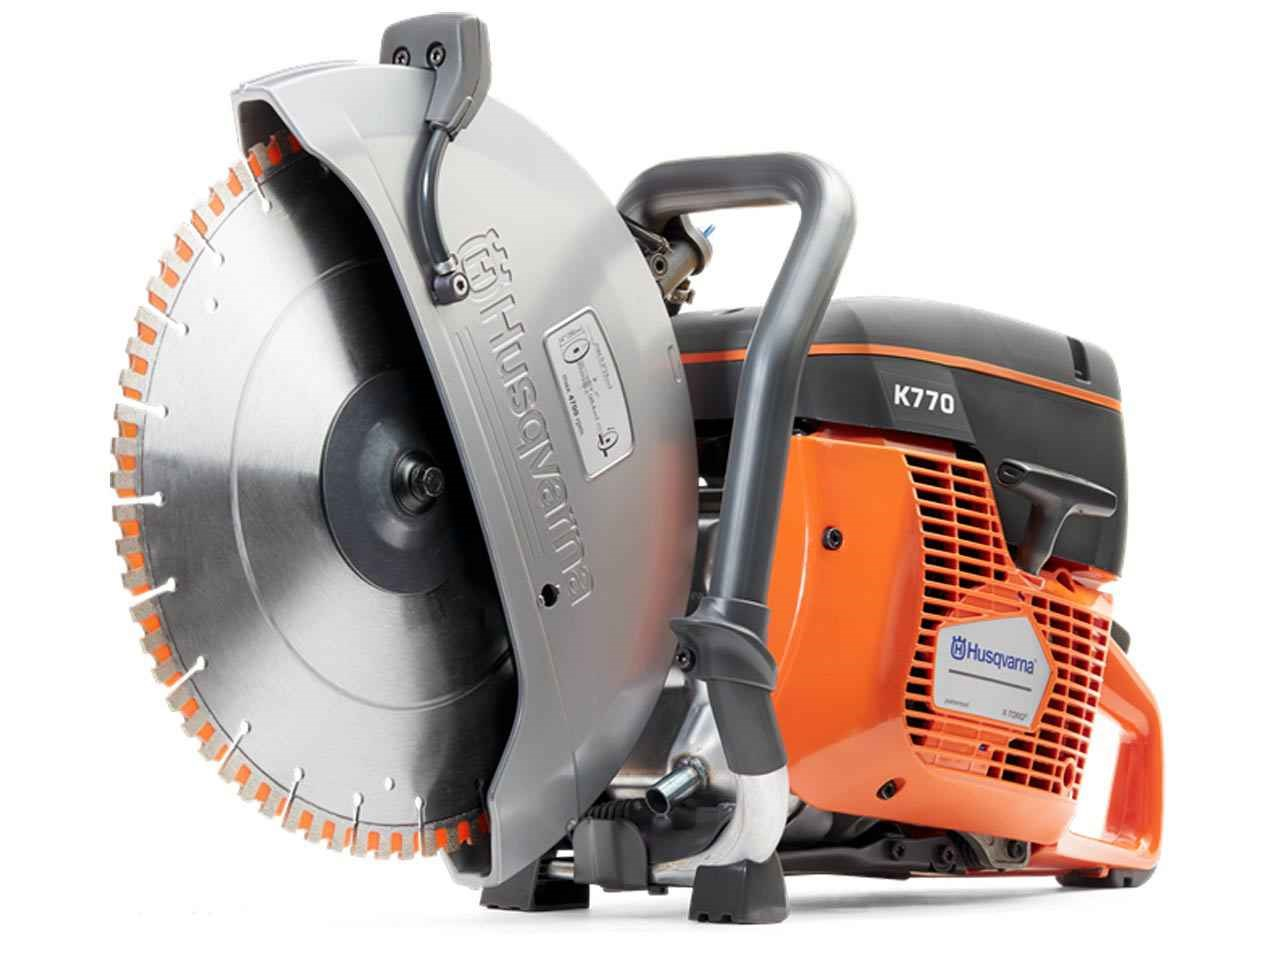 Husqvarna k770 300 300mm12in disc cutter and diamond blade greentooth Images